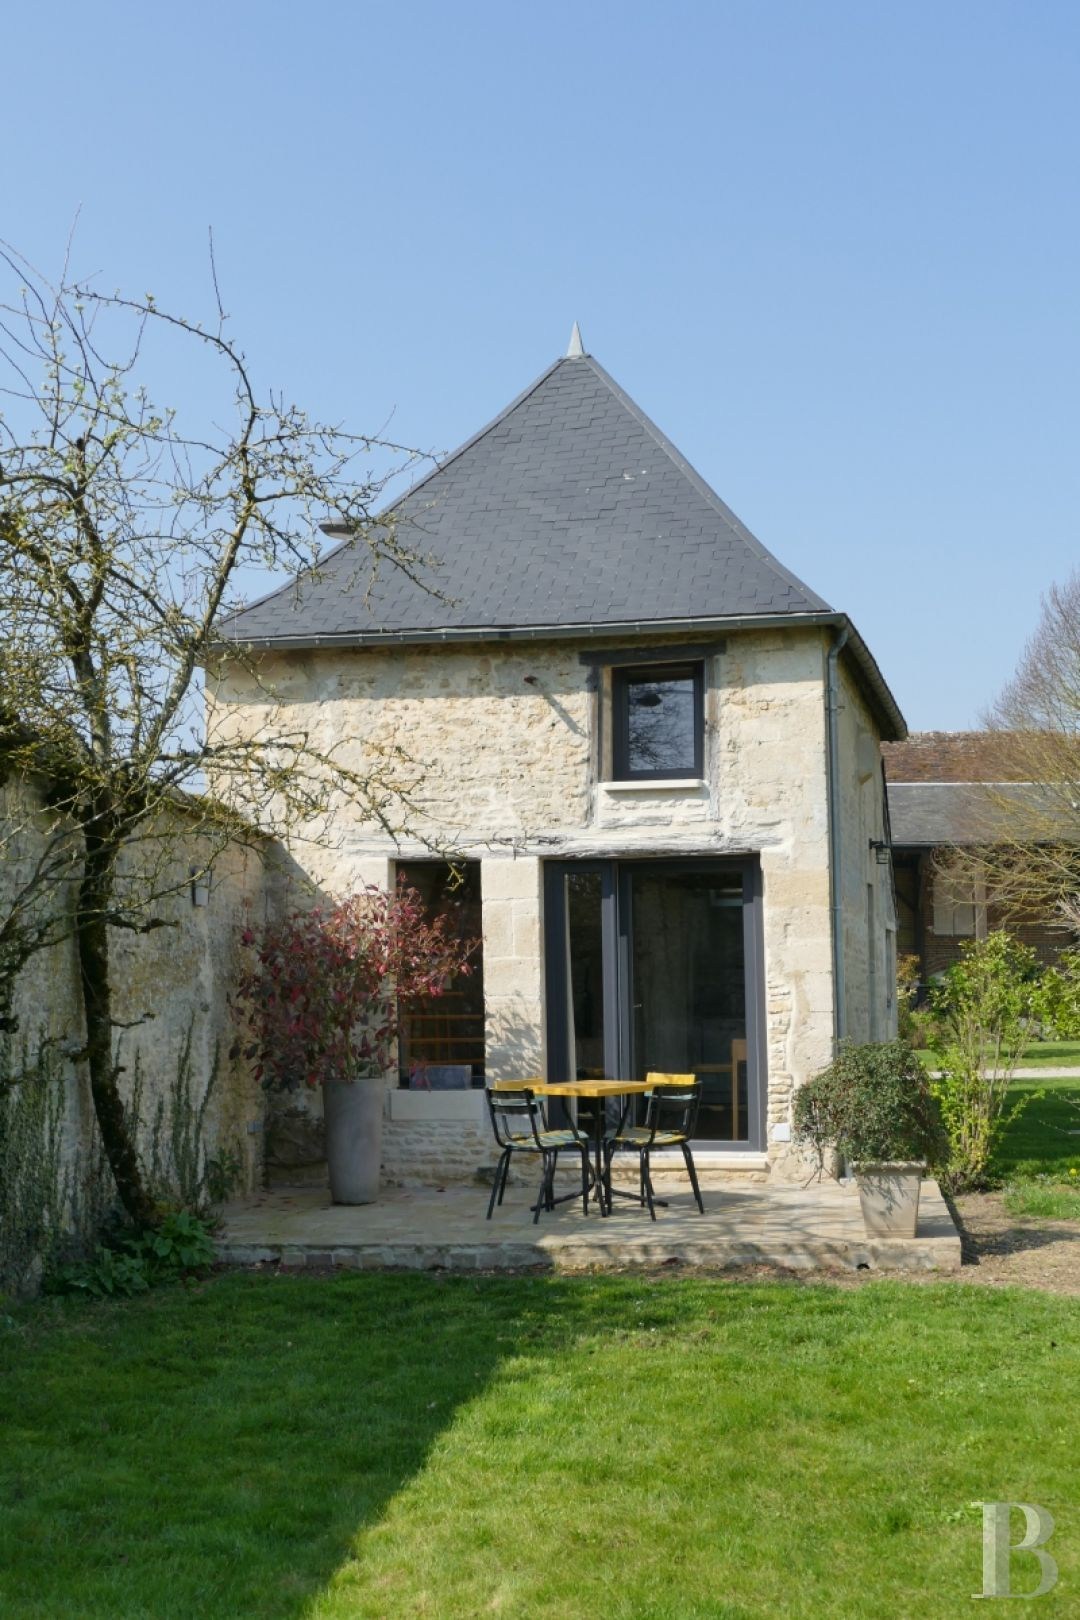 property for sale France lower normandy residences village - 14 zoom